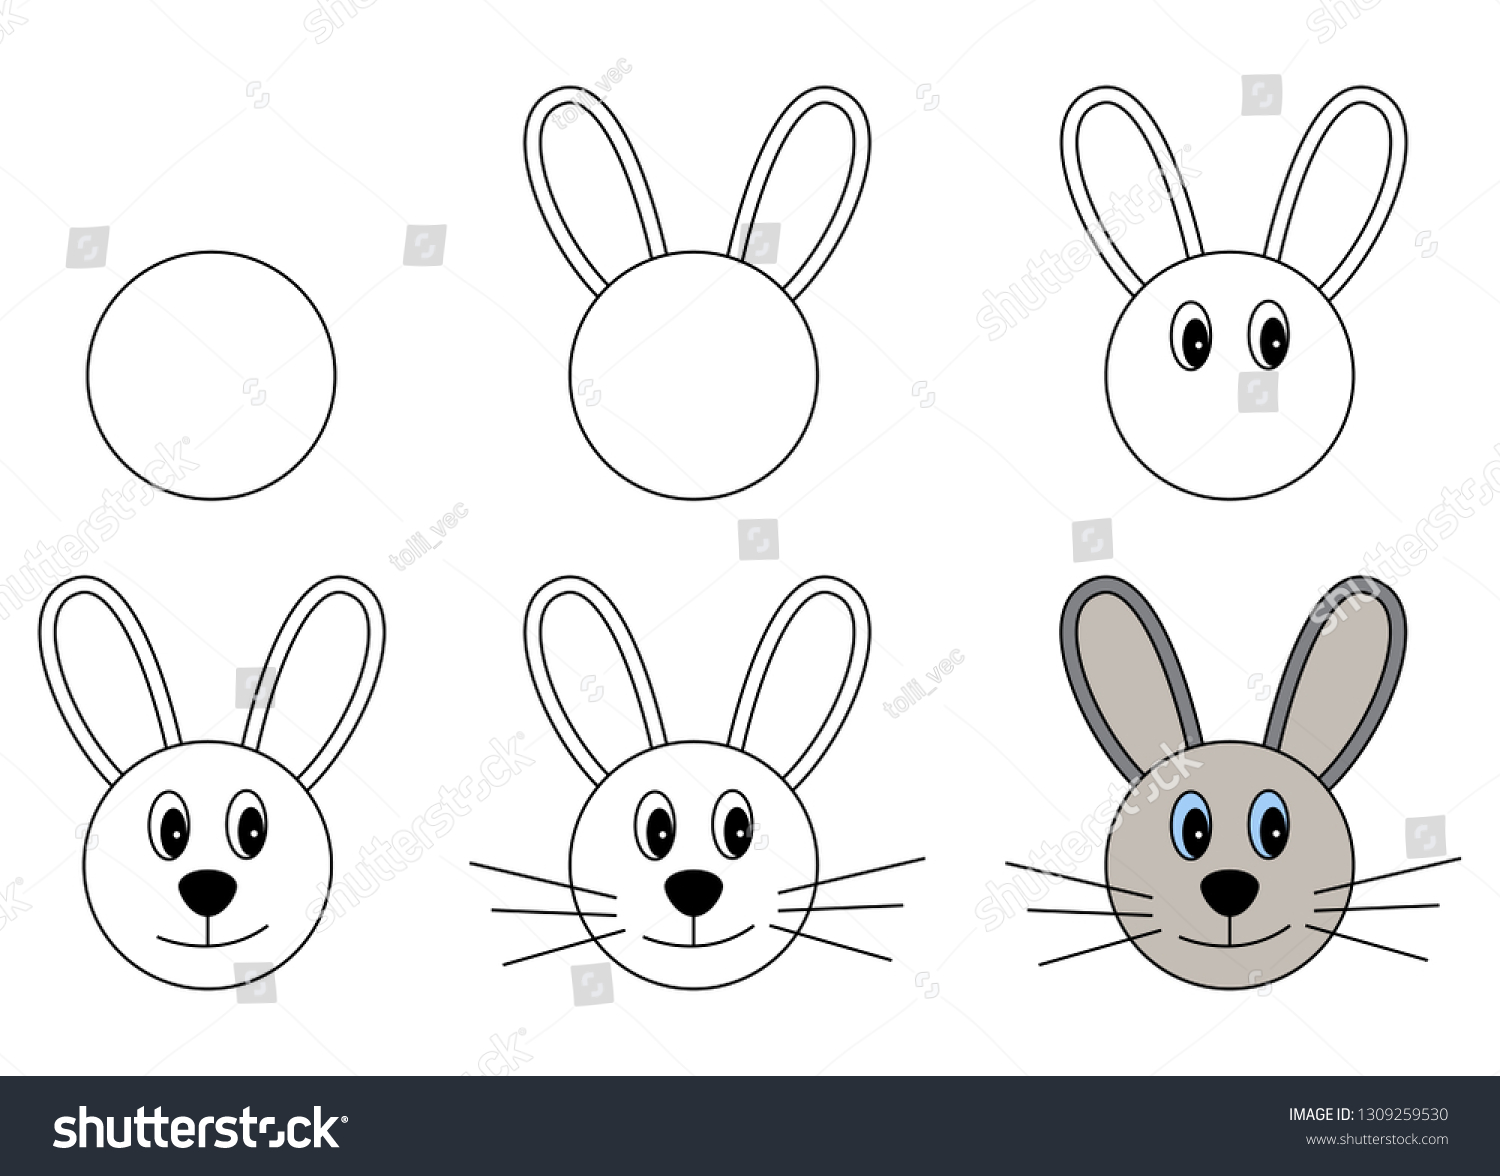 Worksheet Step By Step Drawing Rabbit Stock Vector Royalty Free 1309259530